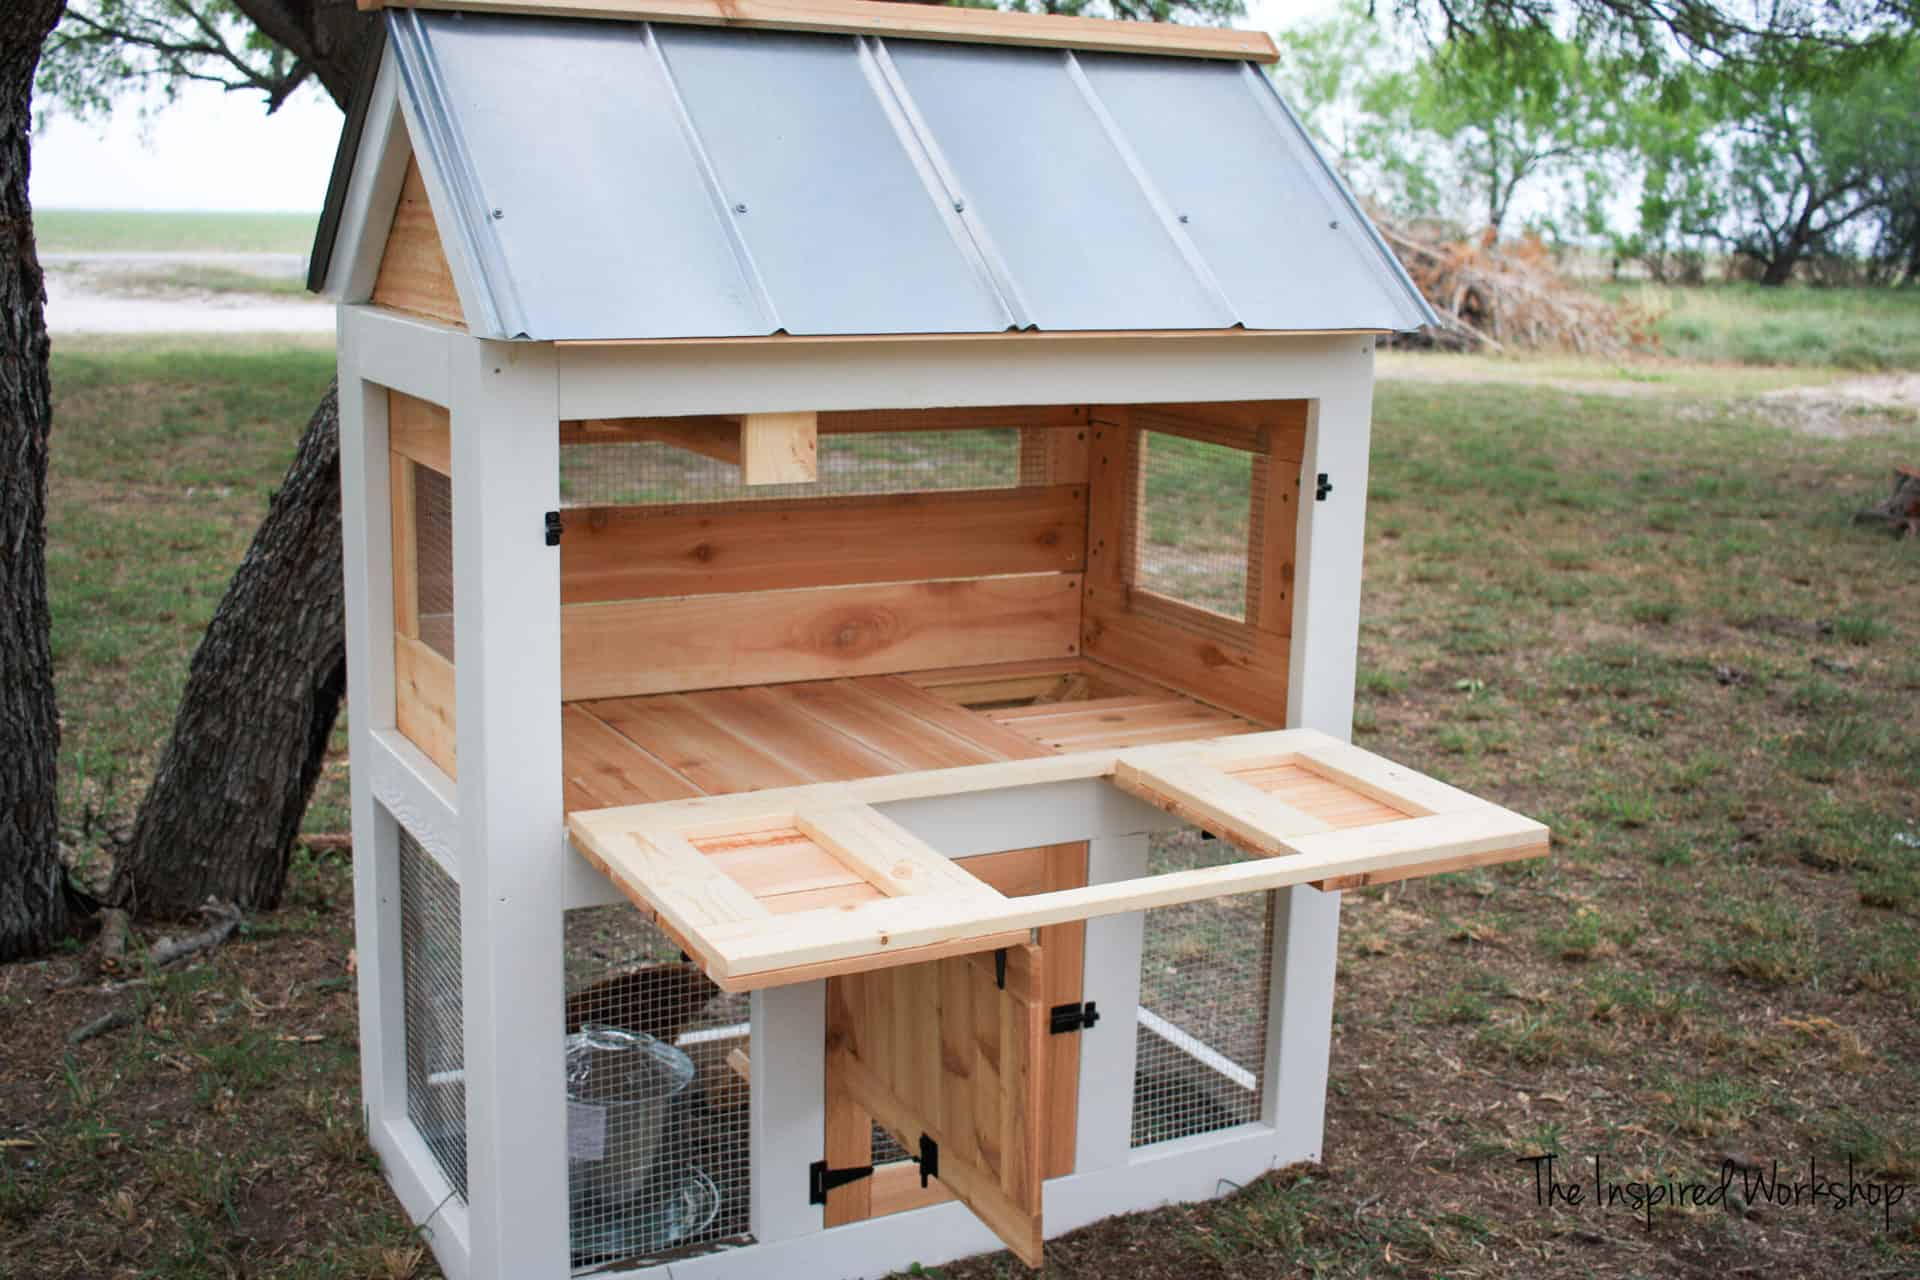 DIY Plans for a chicken coop